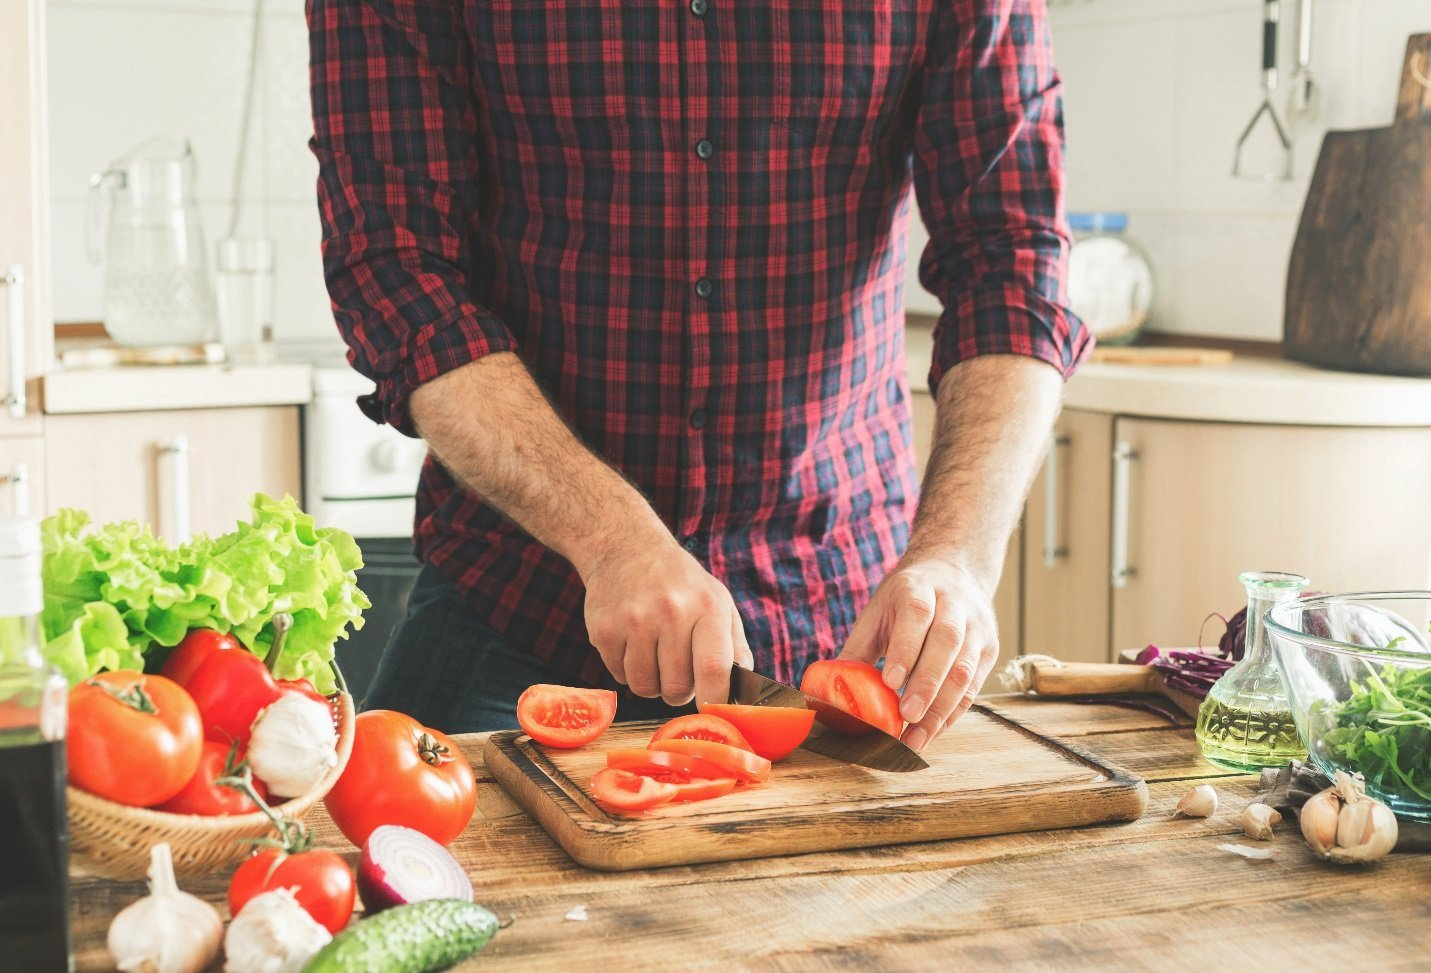 Is It Better to Eat Veggies Raw or Cooked?